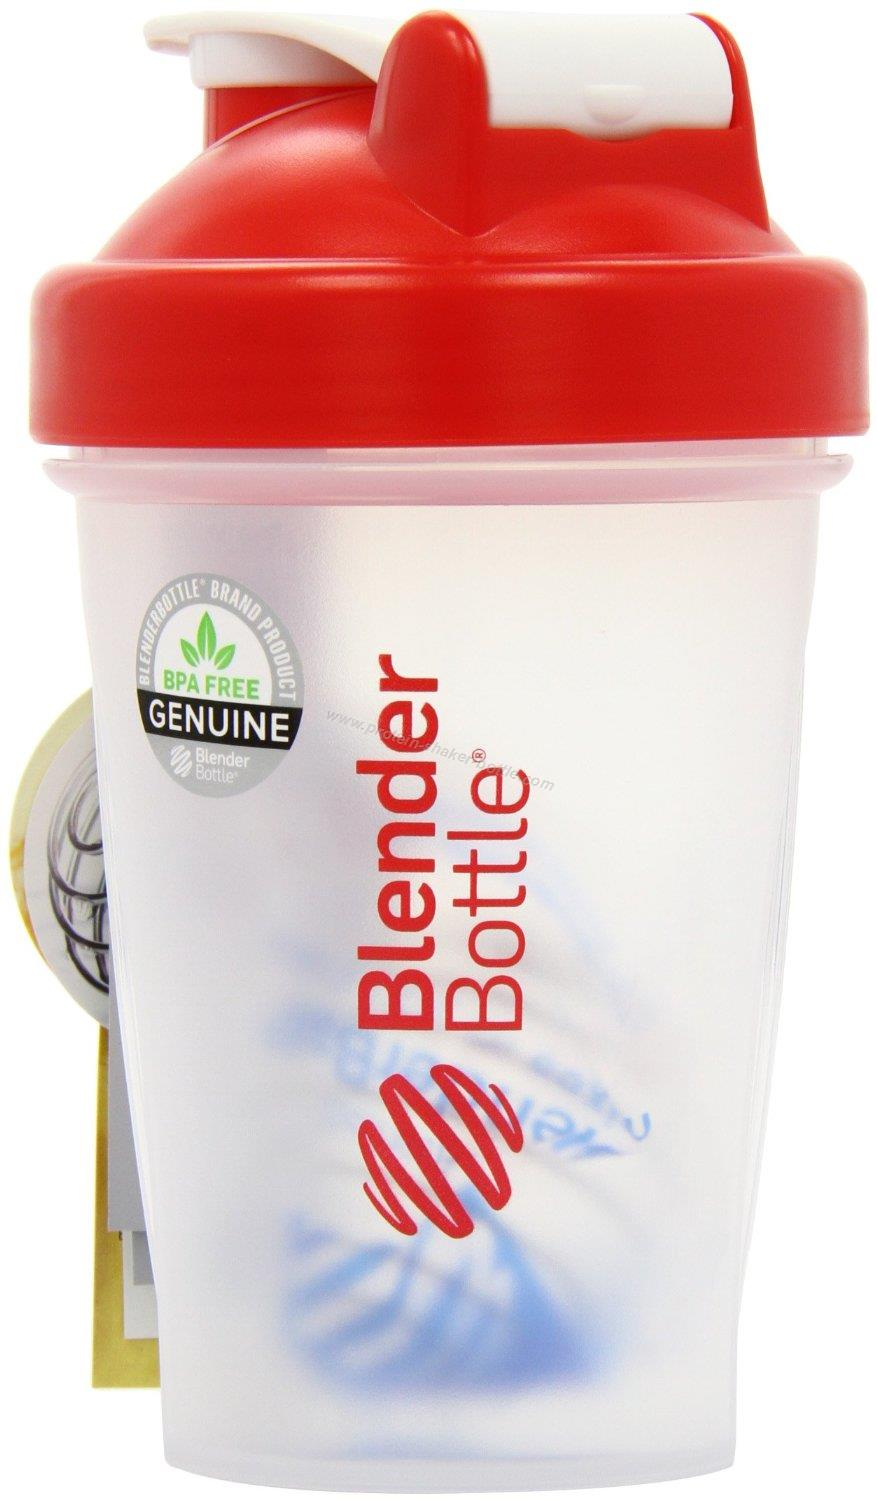 Surgical grade protein shake bottle